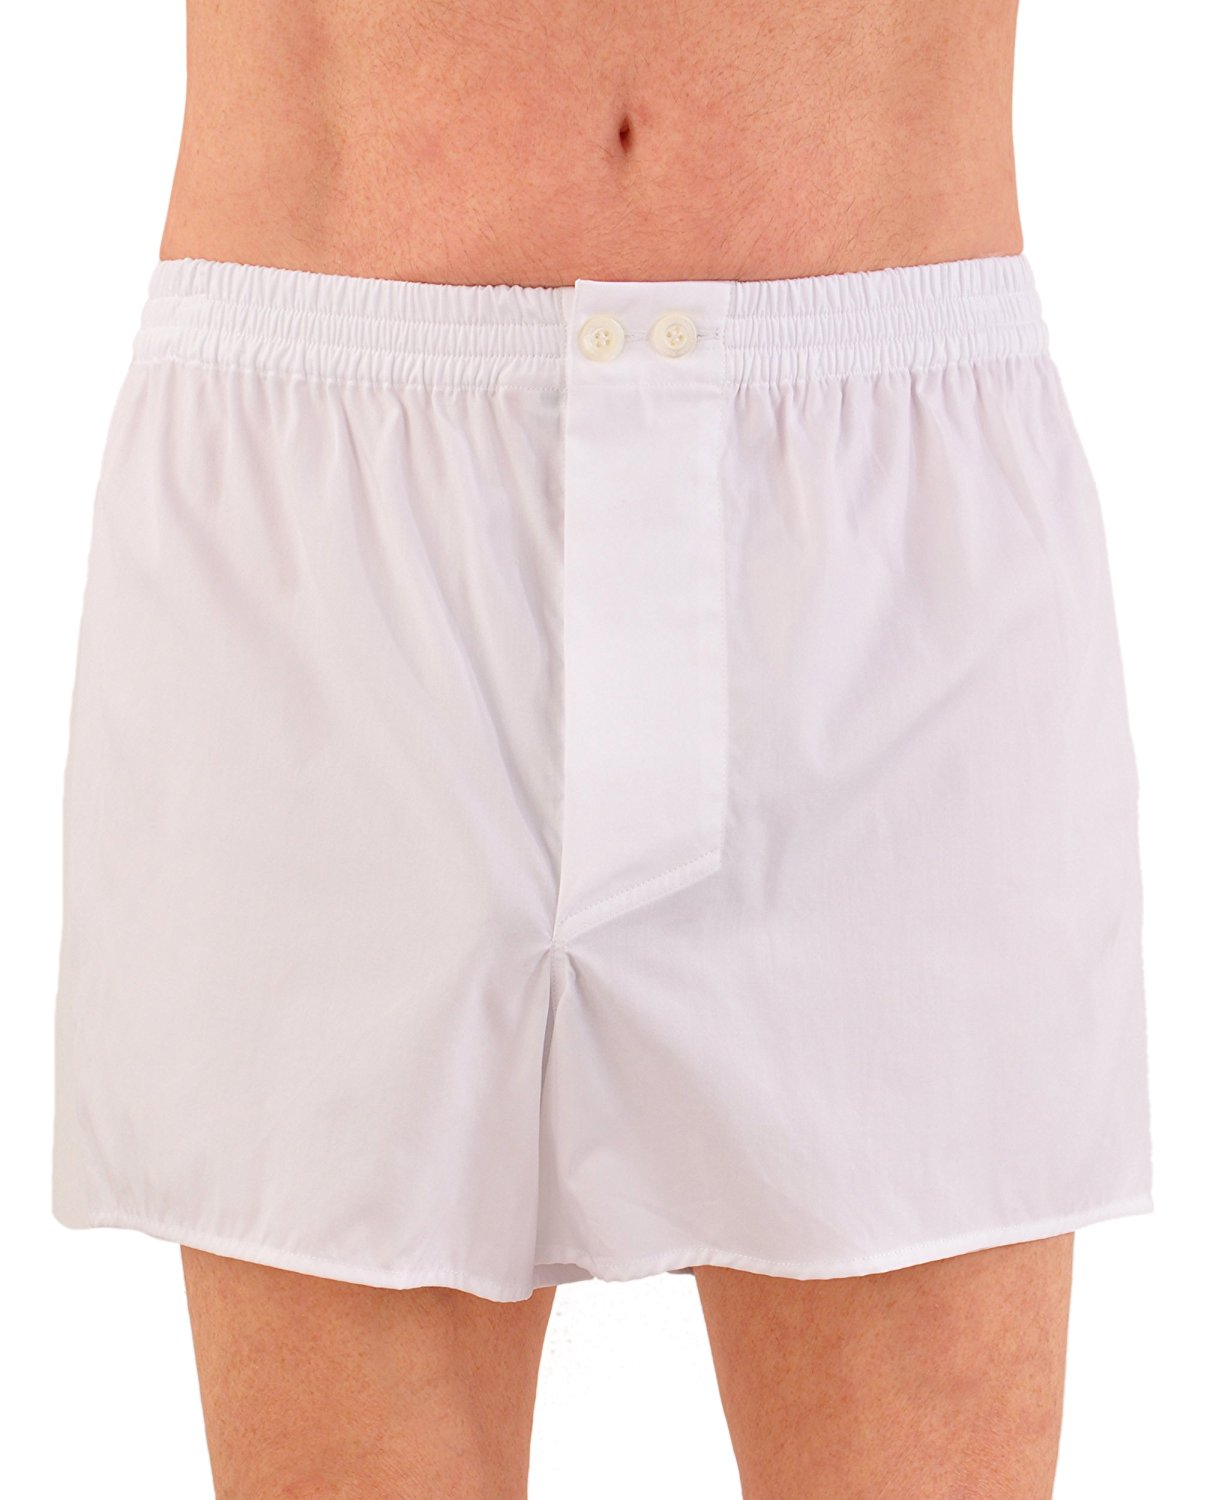 World's Finest Woven Boxer Shorts - 3 Pairs